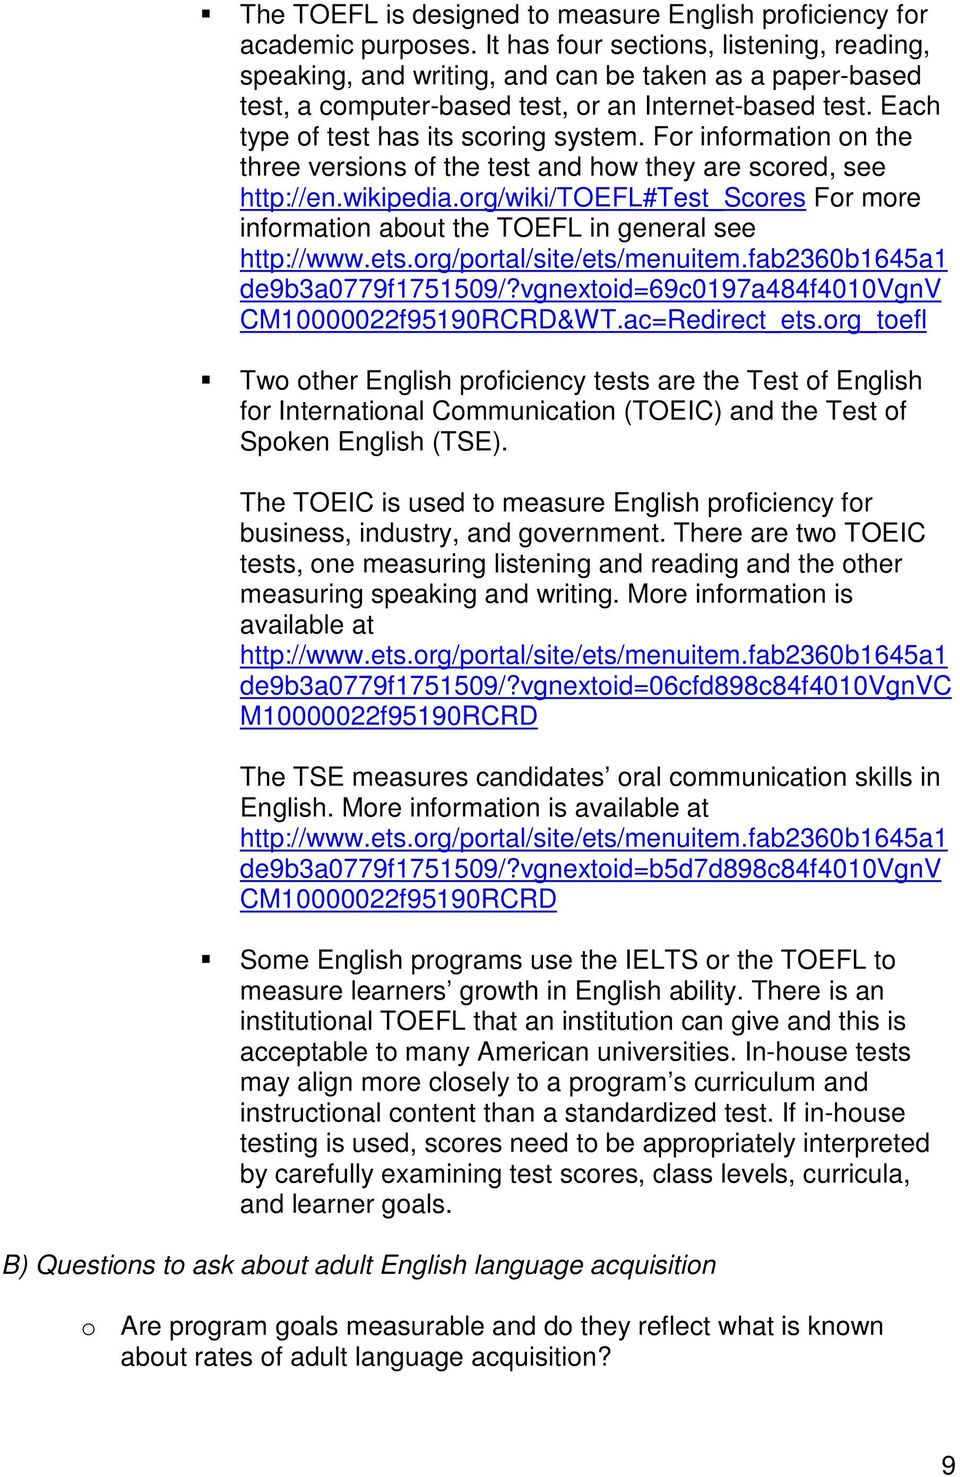 For information on the three versions of the test and how they are scored, see http://en.wikipedia.org/wiki/toefl#test_scores For more information about the TOEFL in general see http://www.ets.